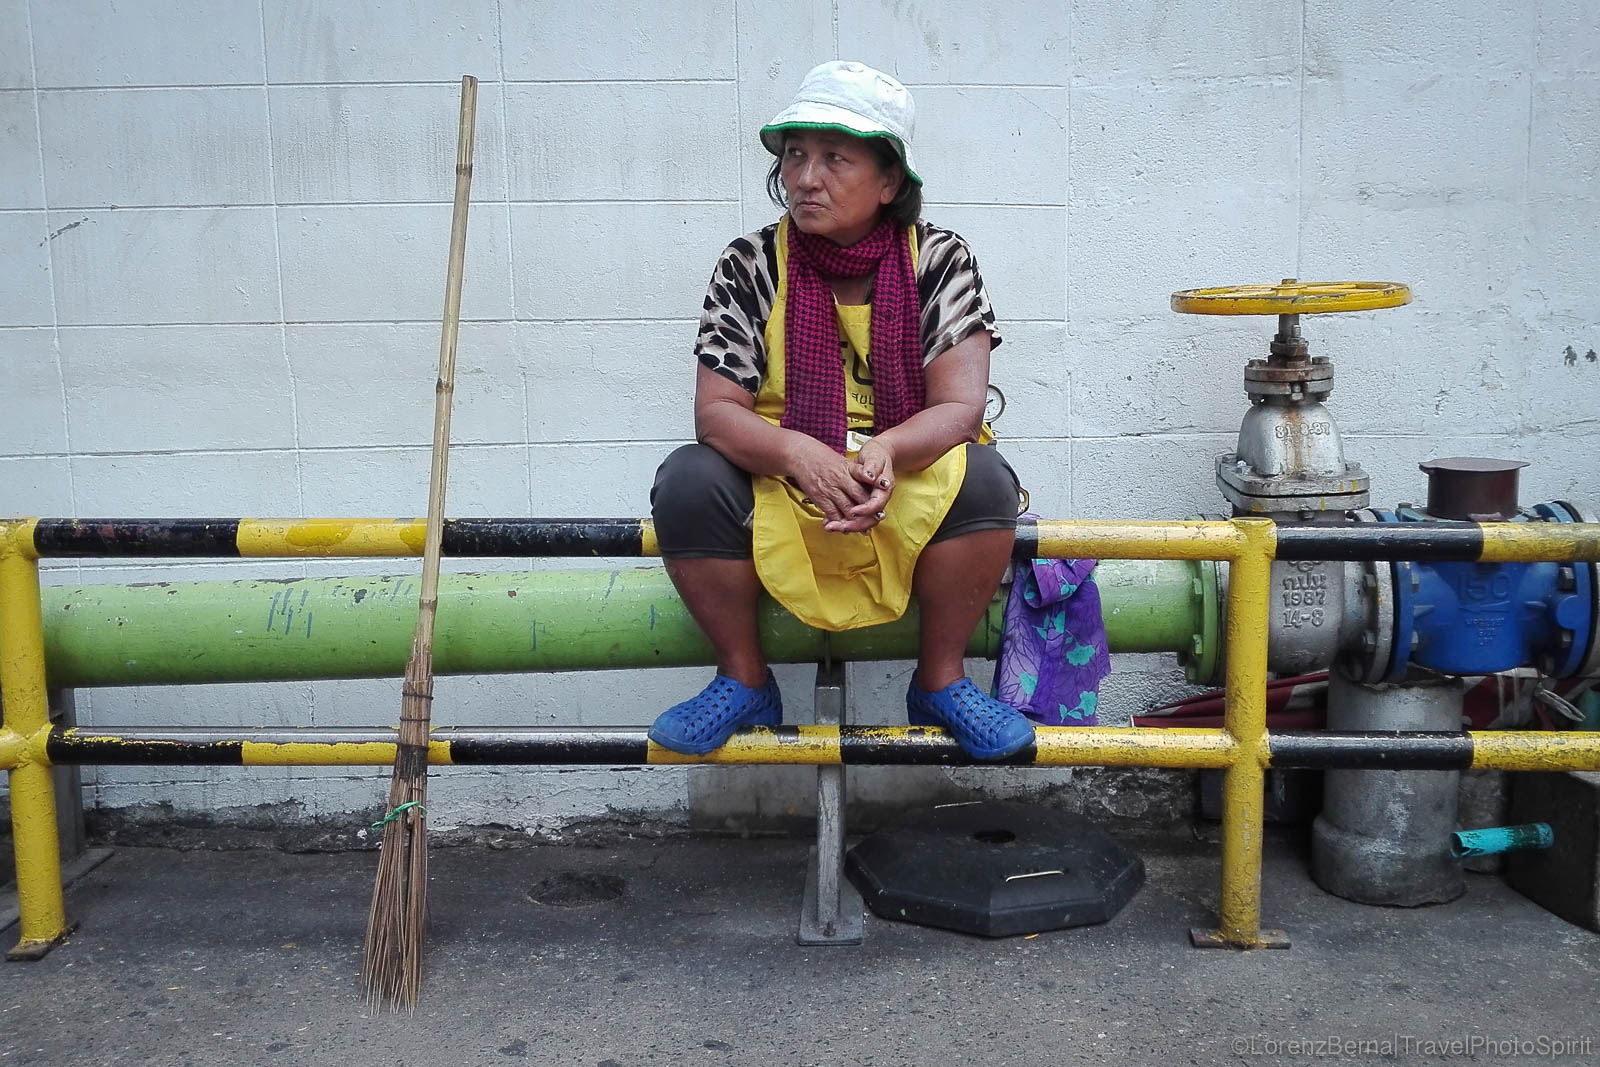 Worker on a break, in the back of a big commercial building in Bangkok.